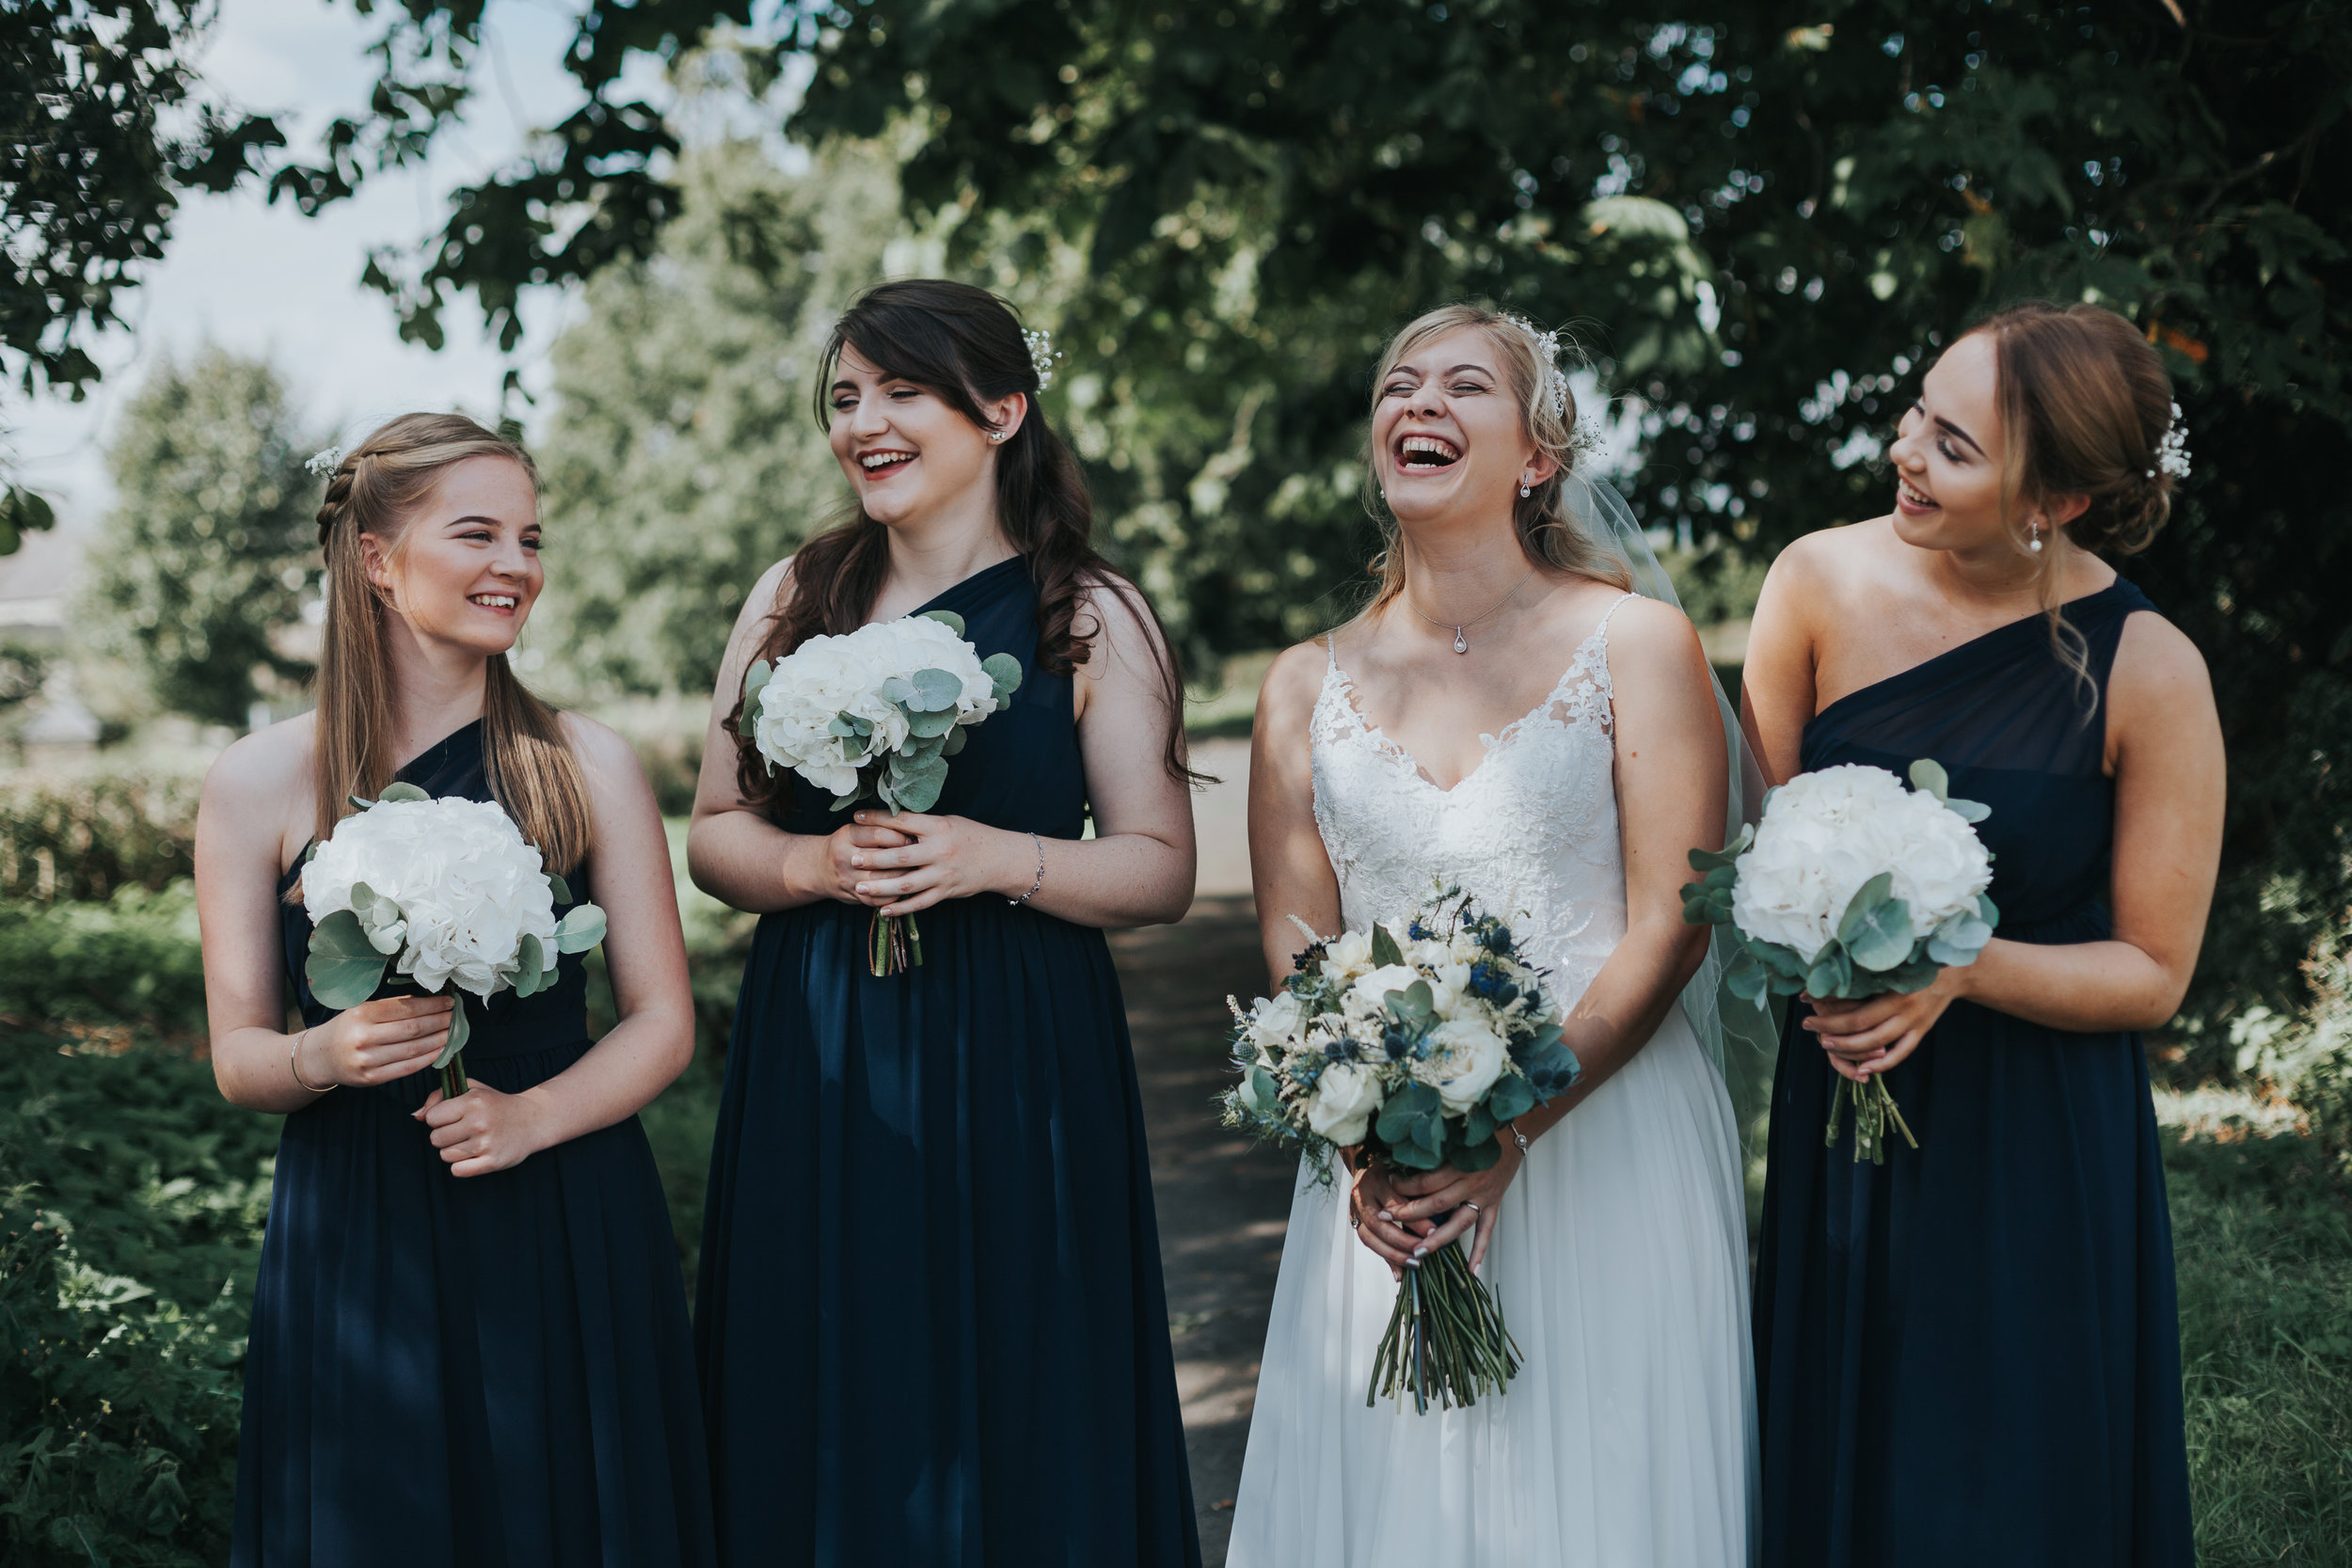 Bride laughs with bridesmaids.